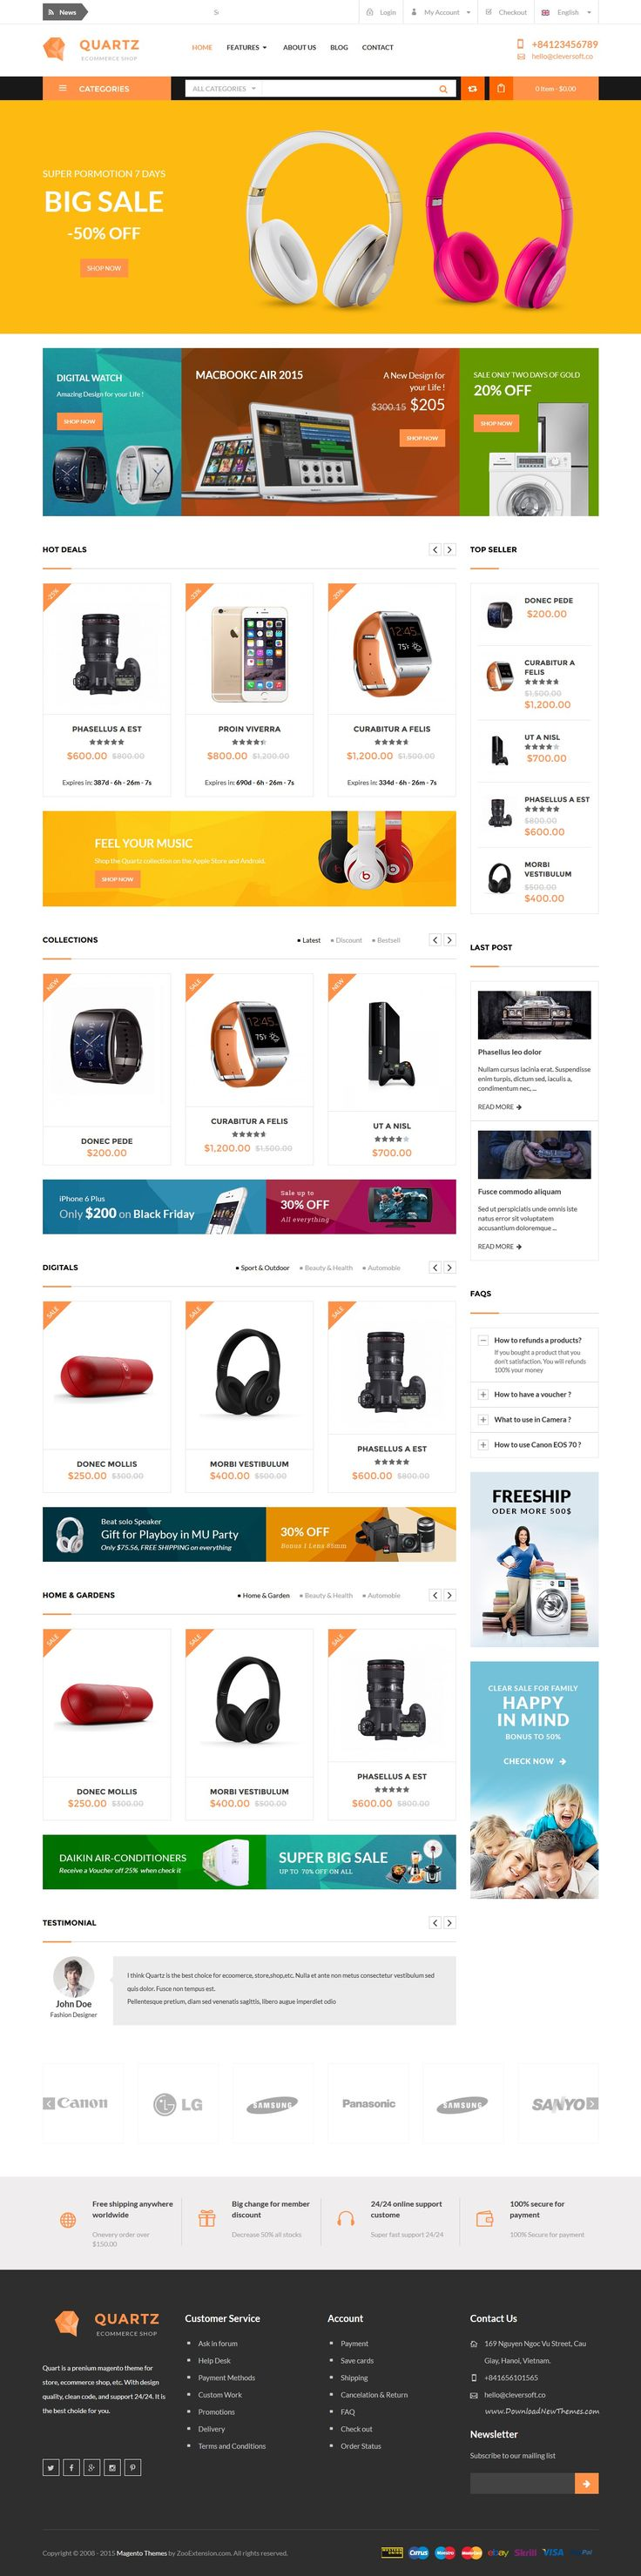 Quartz is premium responsive magento theme #digital #electronics #eCommerce…